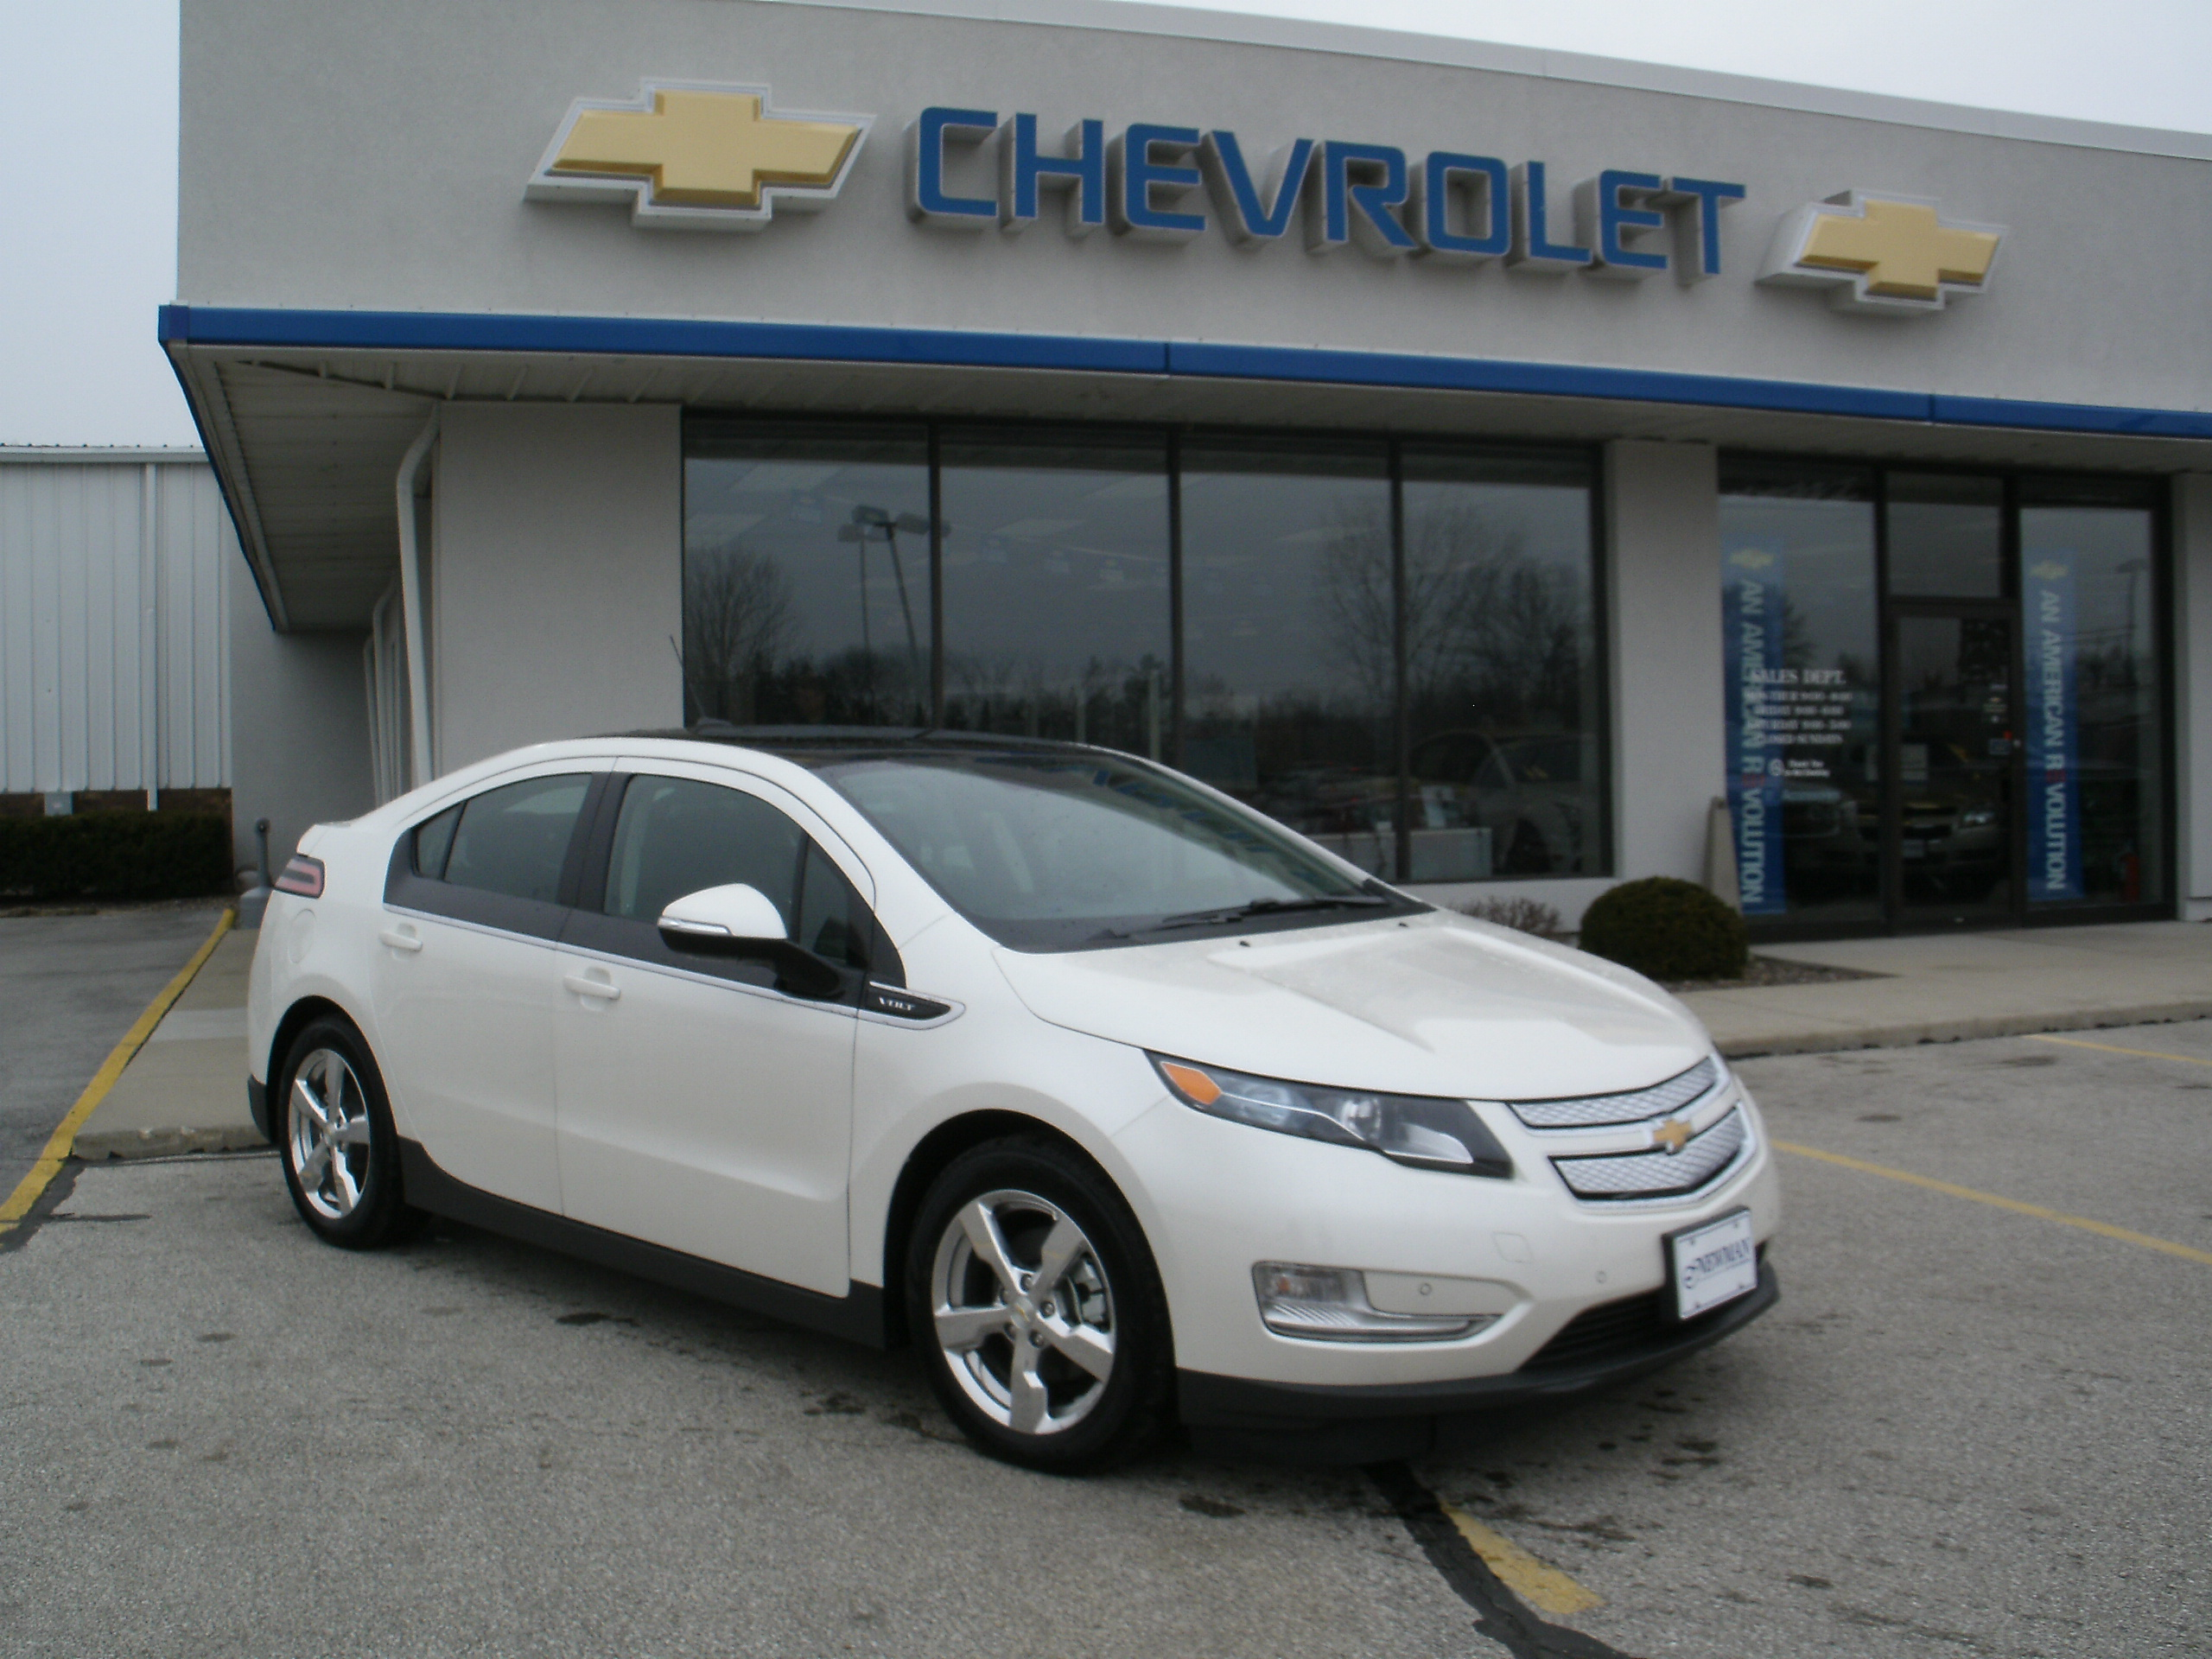 2012 chevrolet volt information and photos momentcar. Black Bedroom Furniture Sets. Home Design Ideas